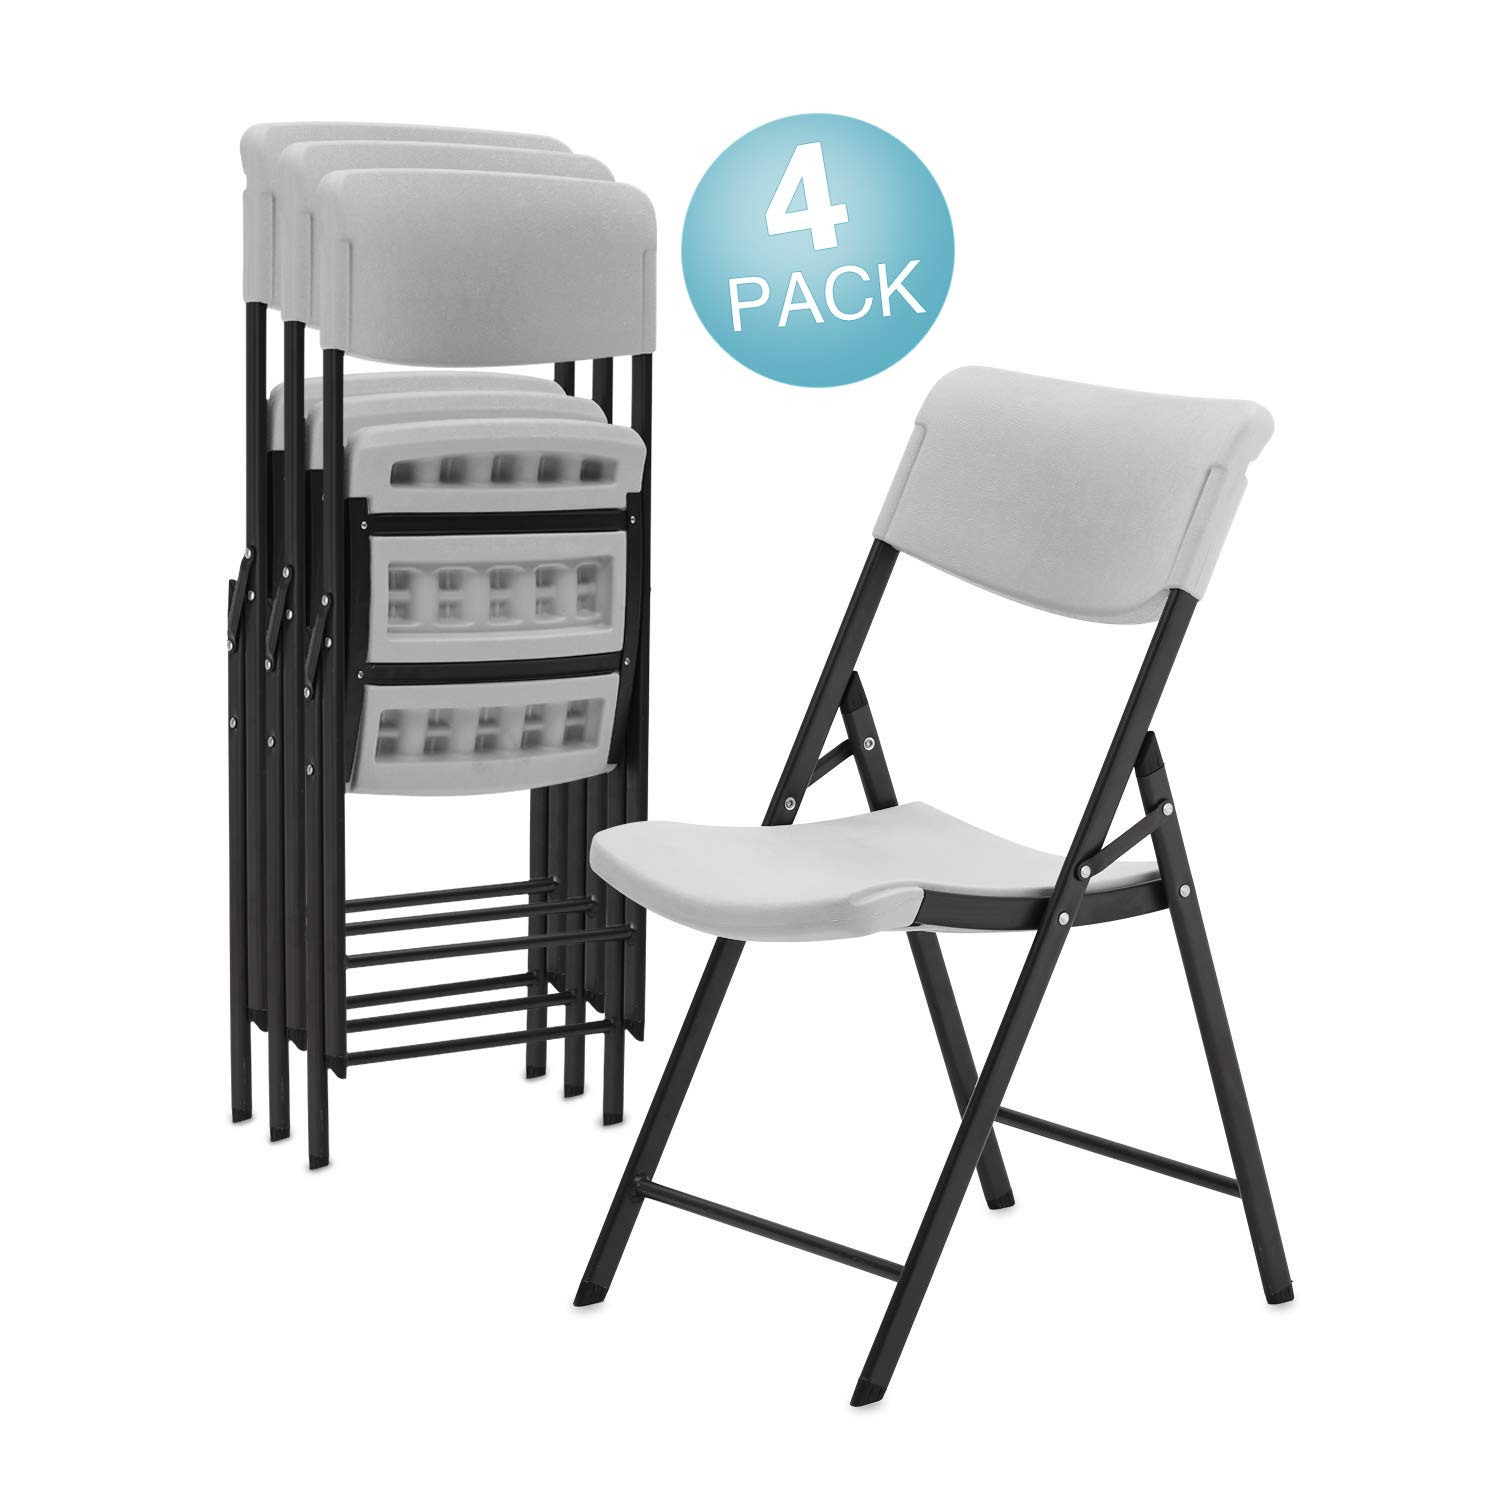 Pataku 4-Pack Plastic Folding Chair with Molded Seat for Parties Portable Stackable Classic Commercial Grade Gray Chair, Indoor or Outdoor